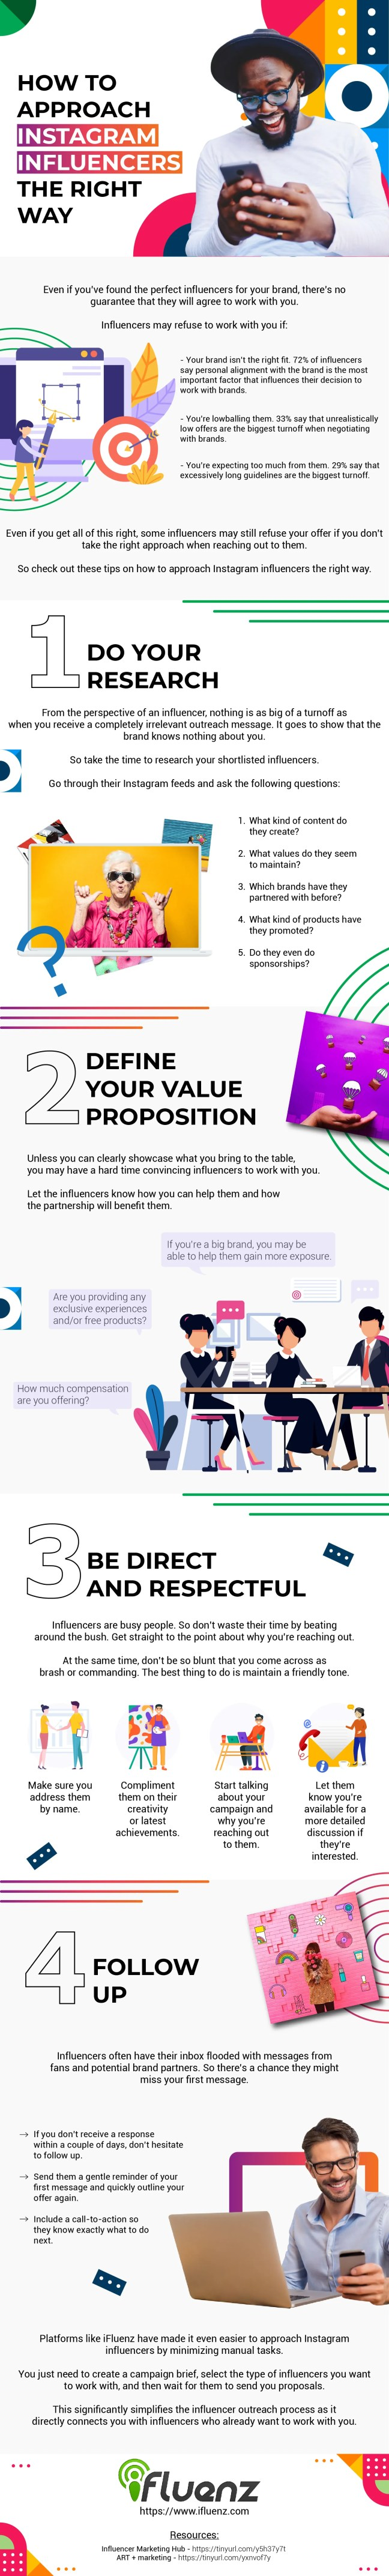 Ifluenz_Infographic_How_to_Approach_Instagram_Influencers_the_Right_Way